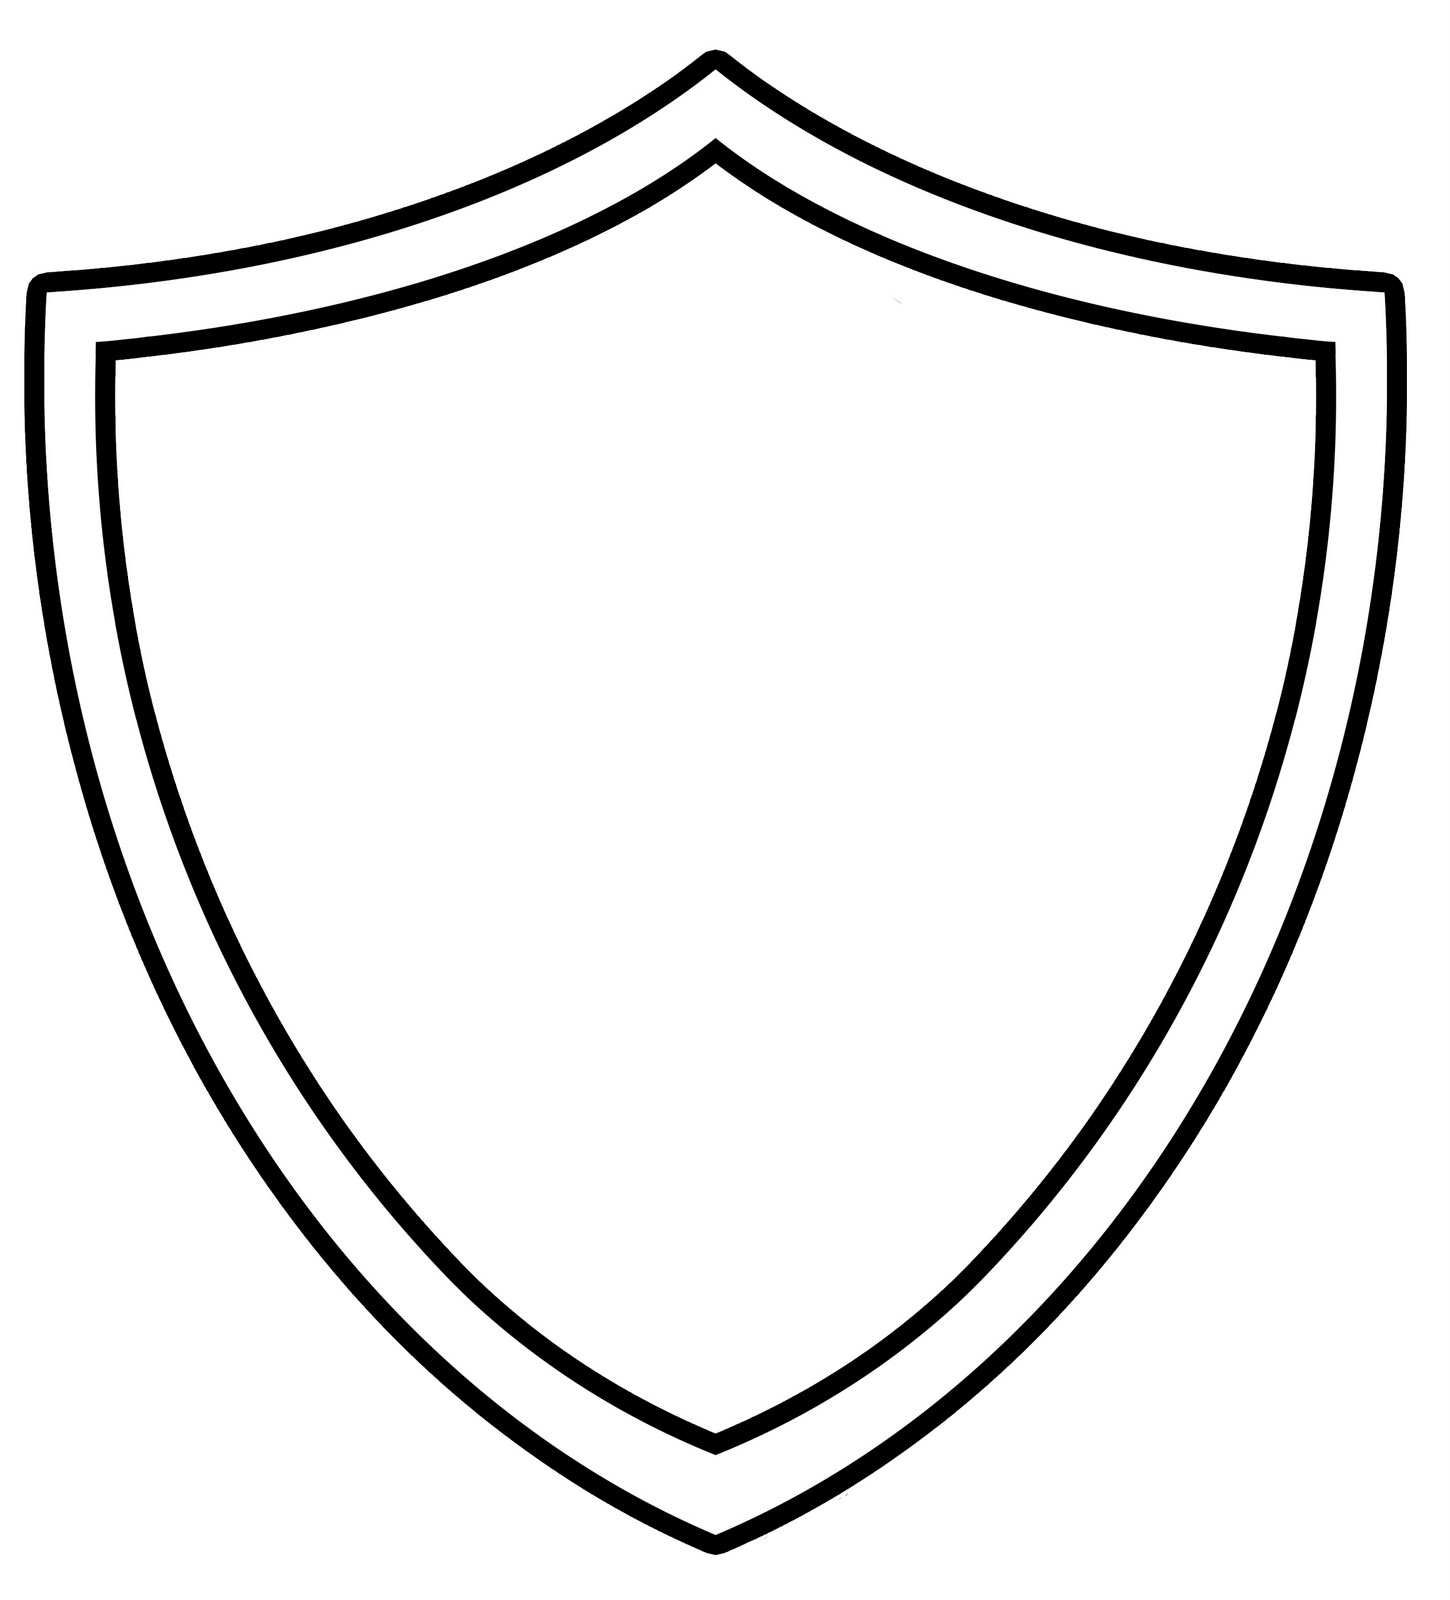 Shield Clipart Black And Whit - Shield Clipart